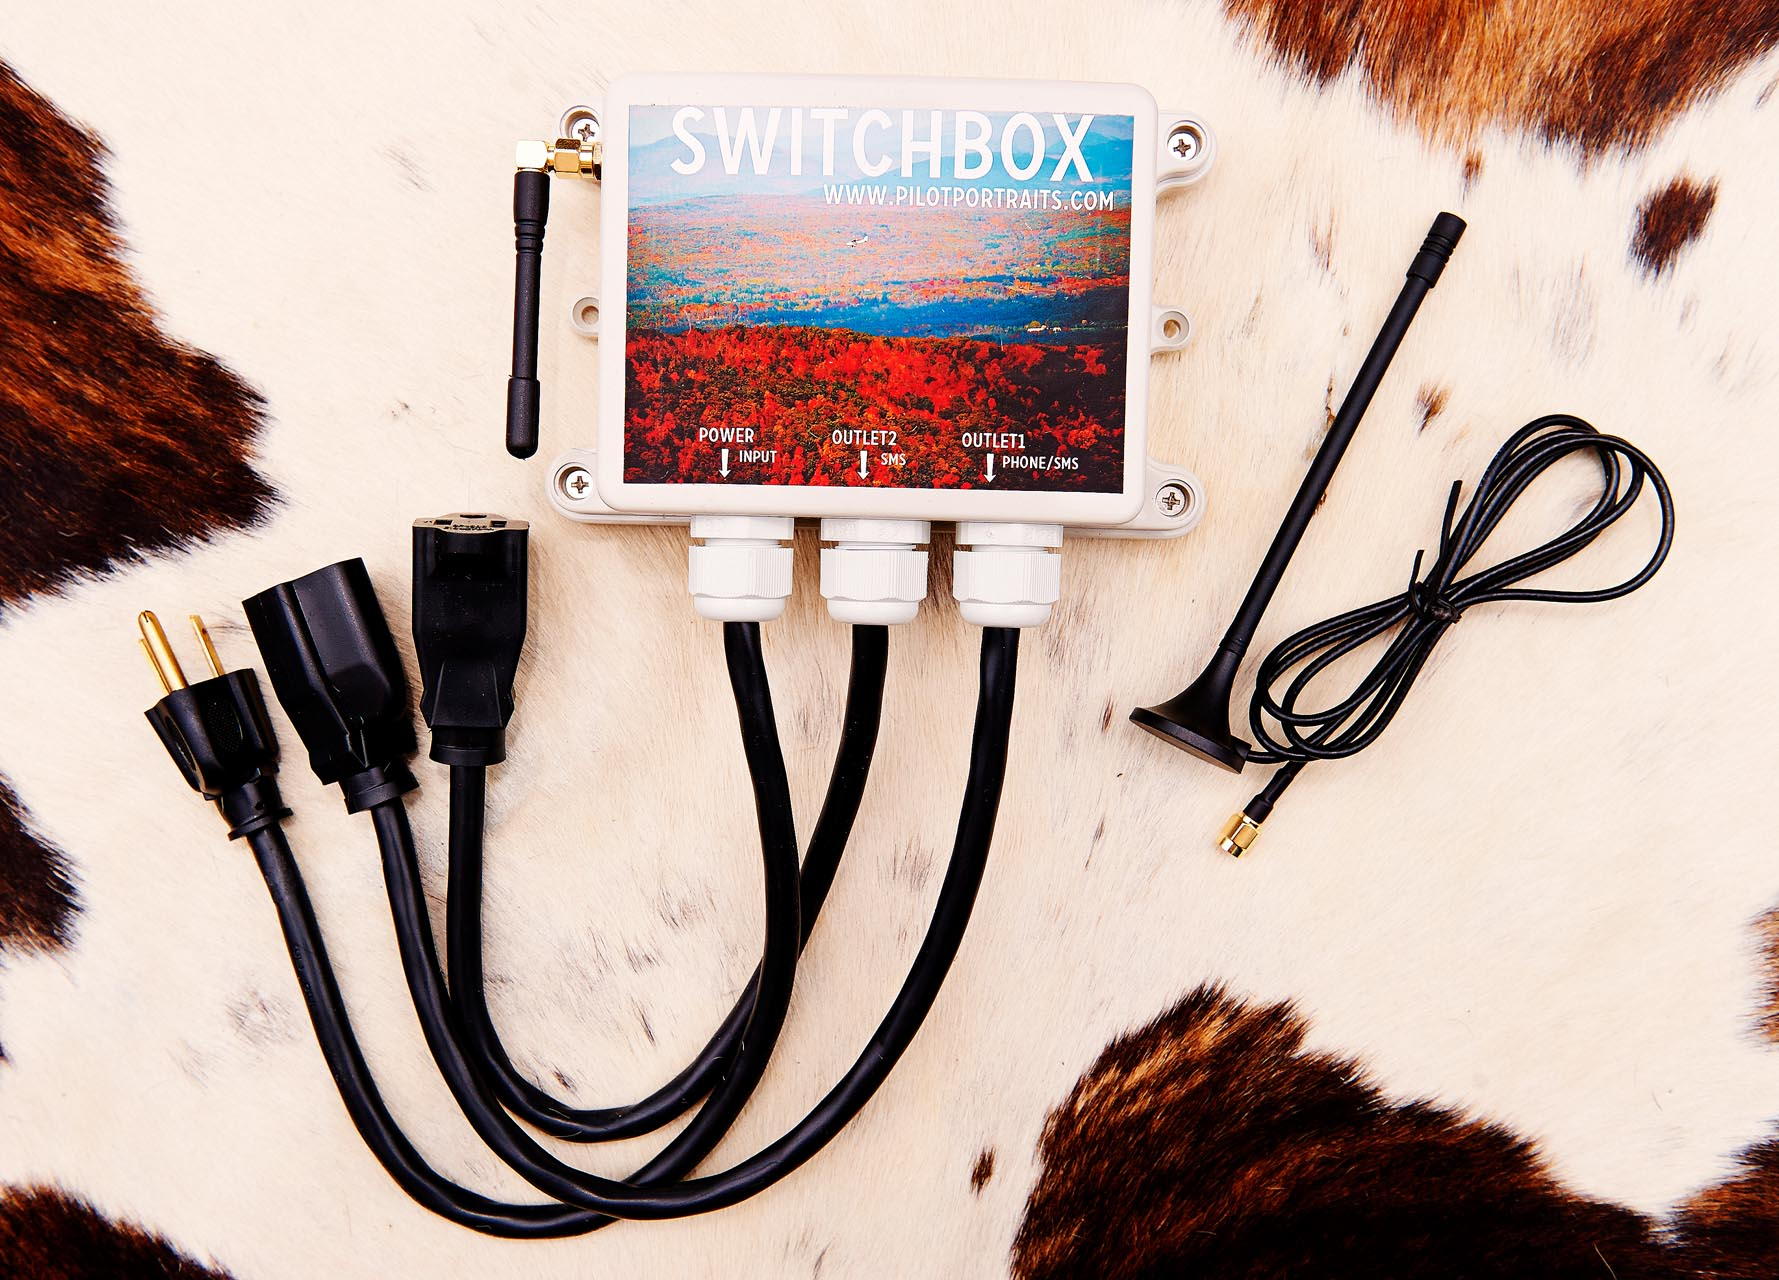 SwitchBox1118_1.jpg